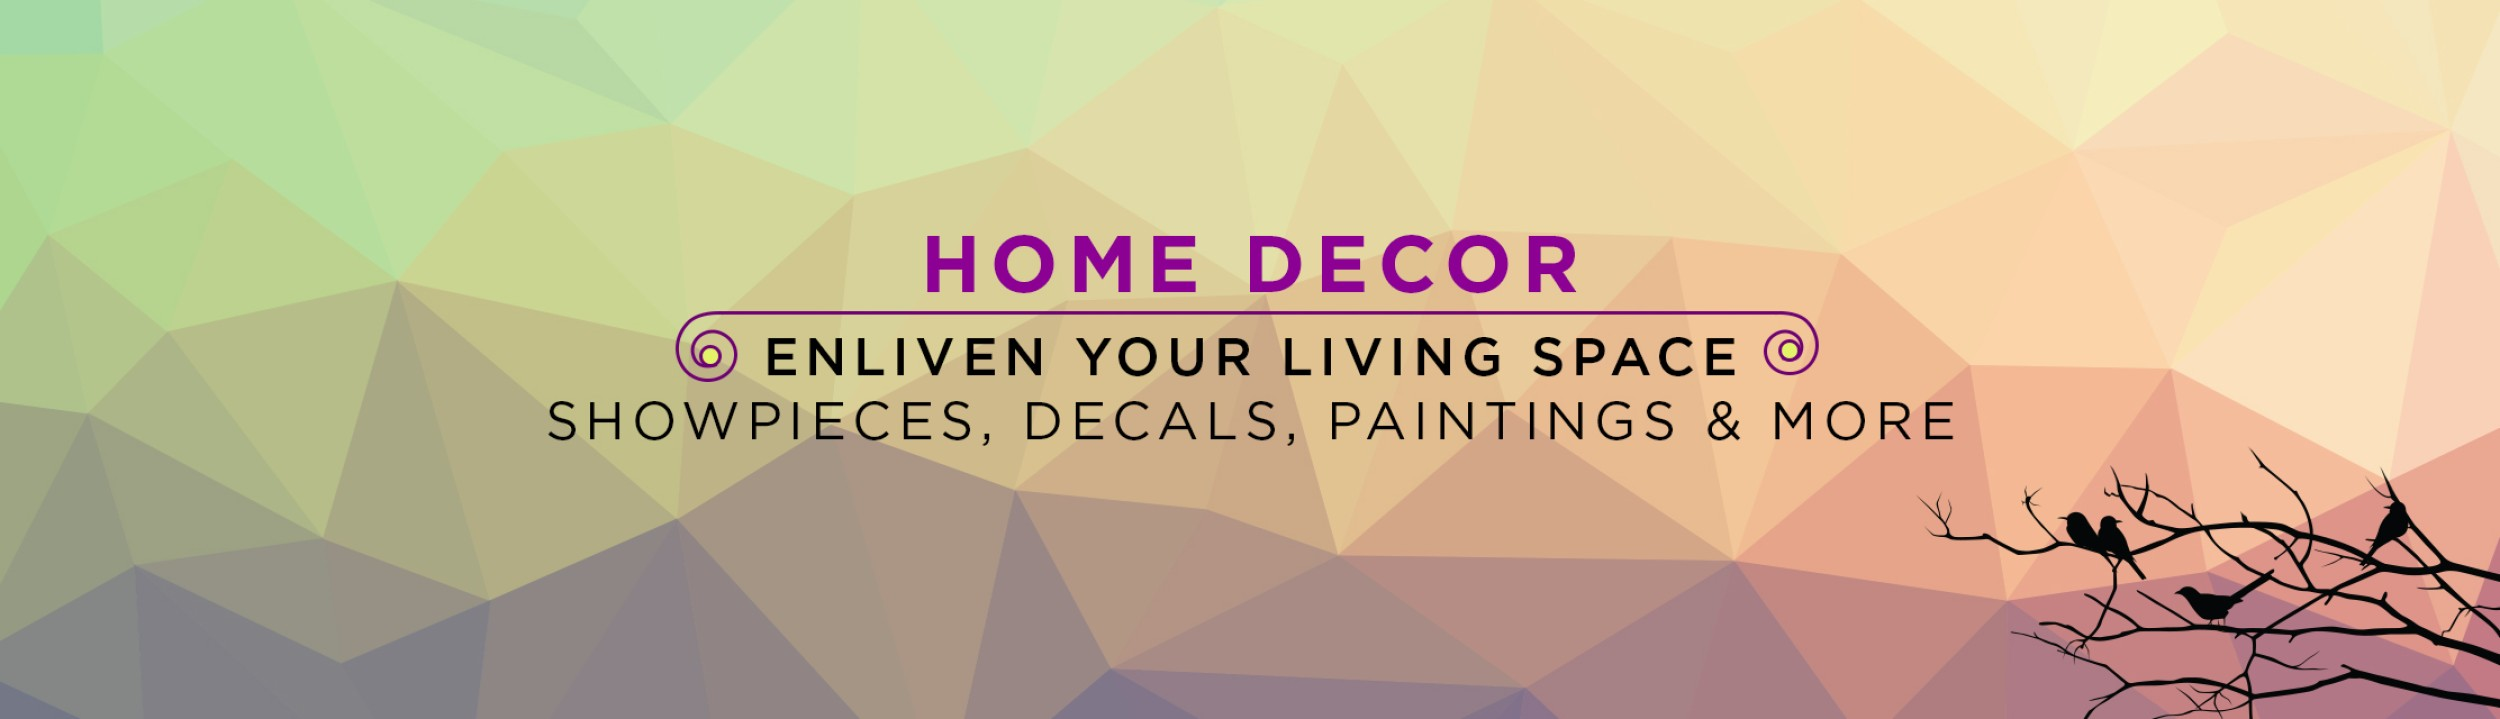 Superior Home Decor Range ...